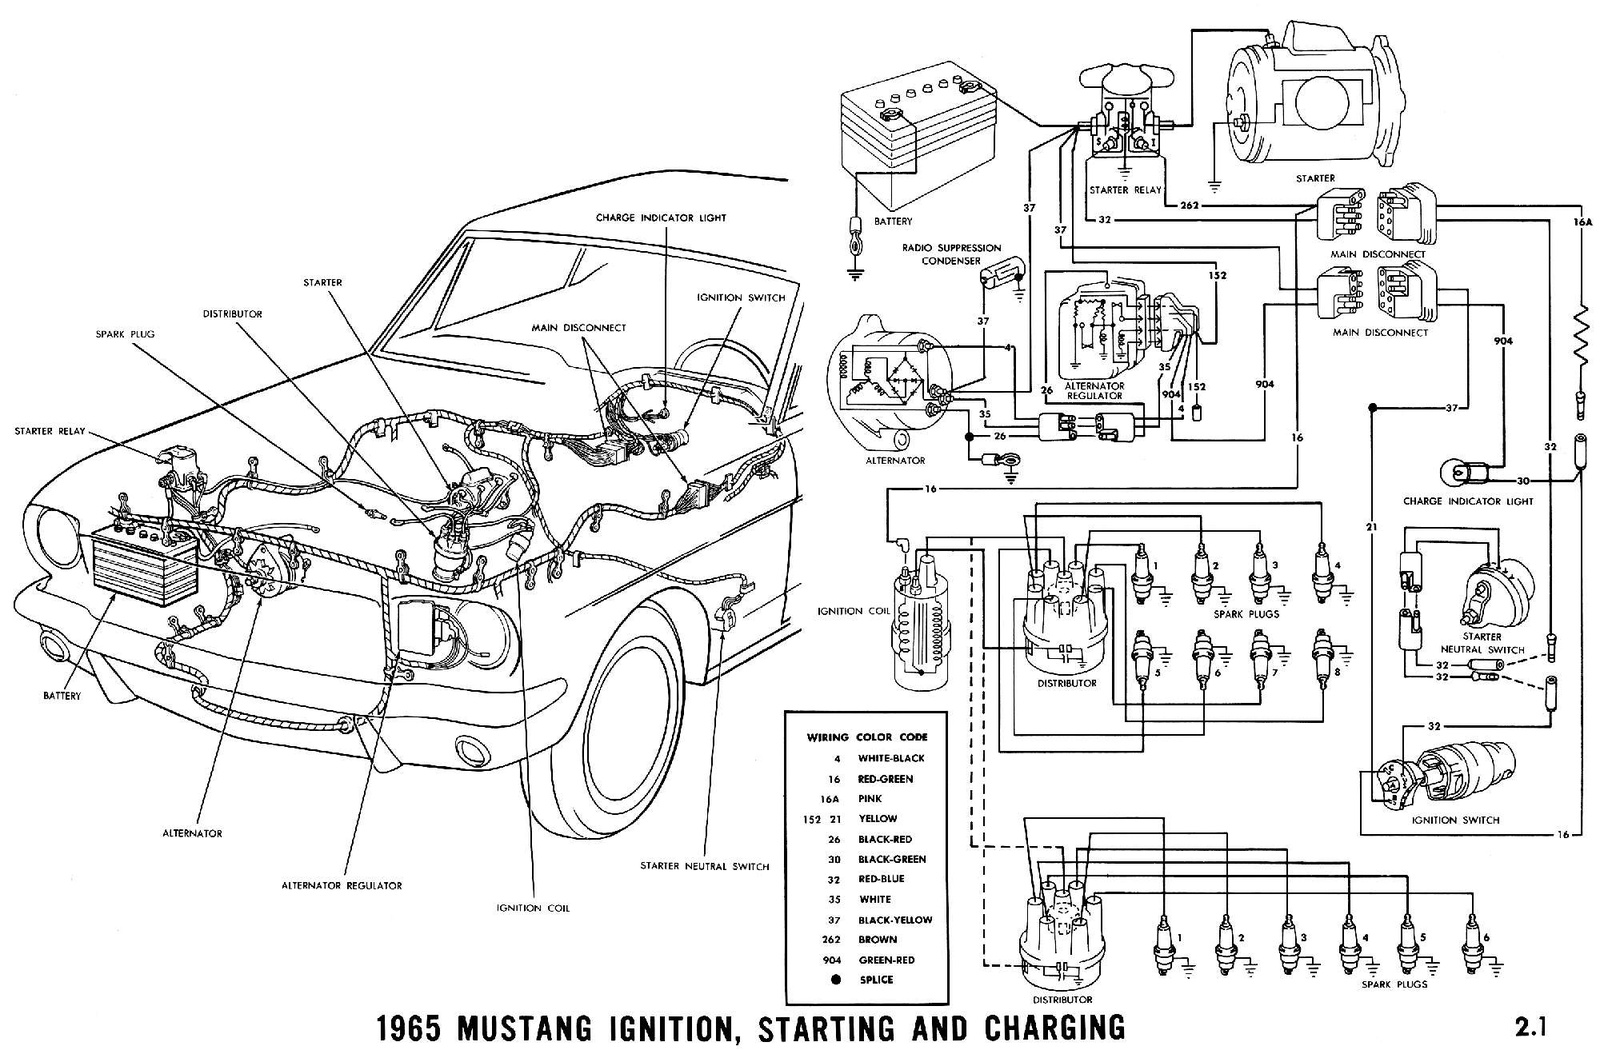 hight resolution of 65 mustang wiring harness wiring diagrams favorites 1965 mustang wiring harness diagram